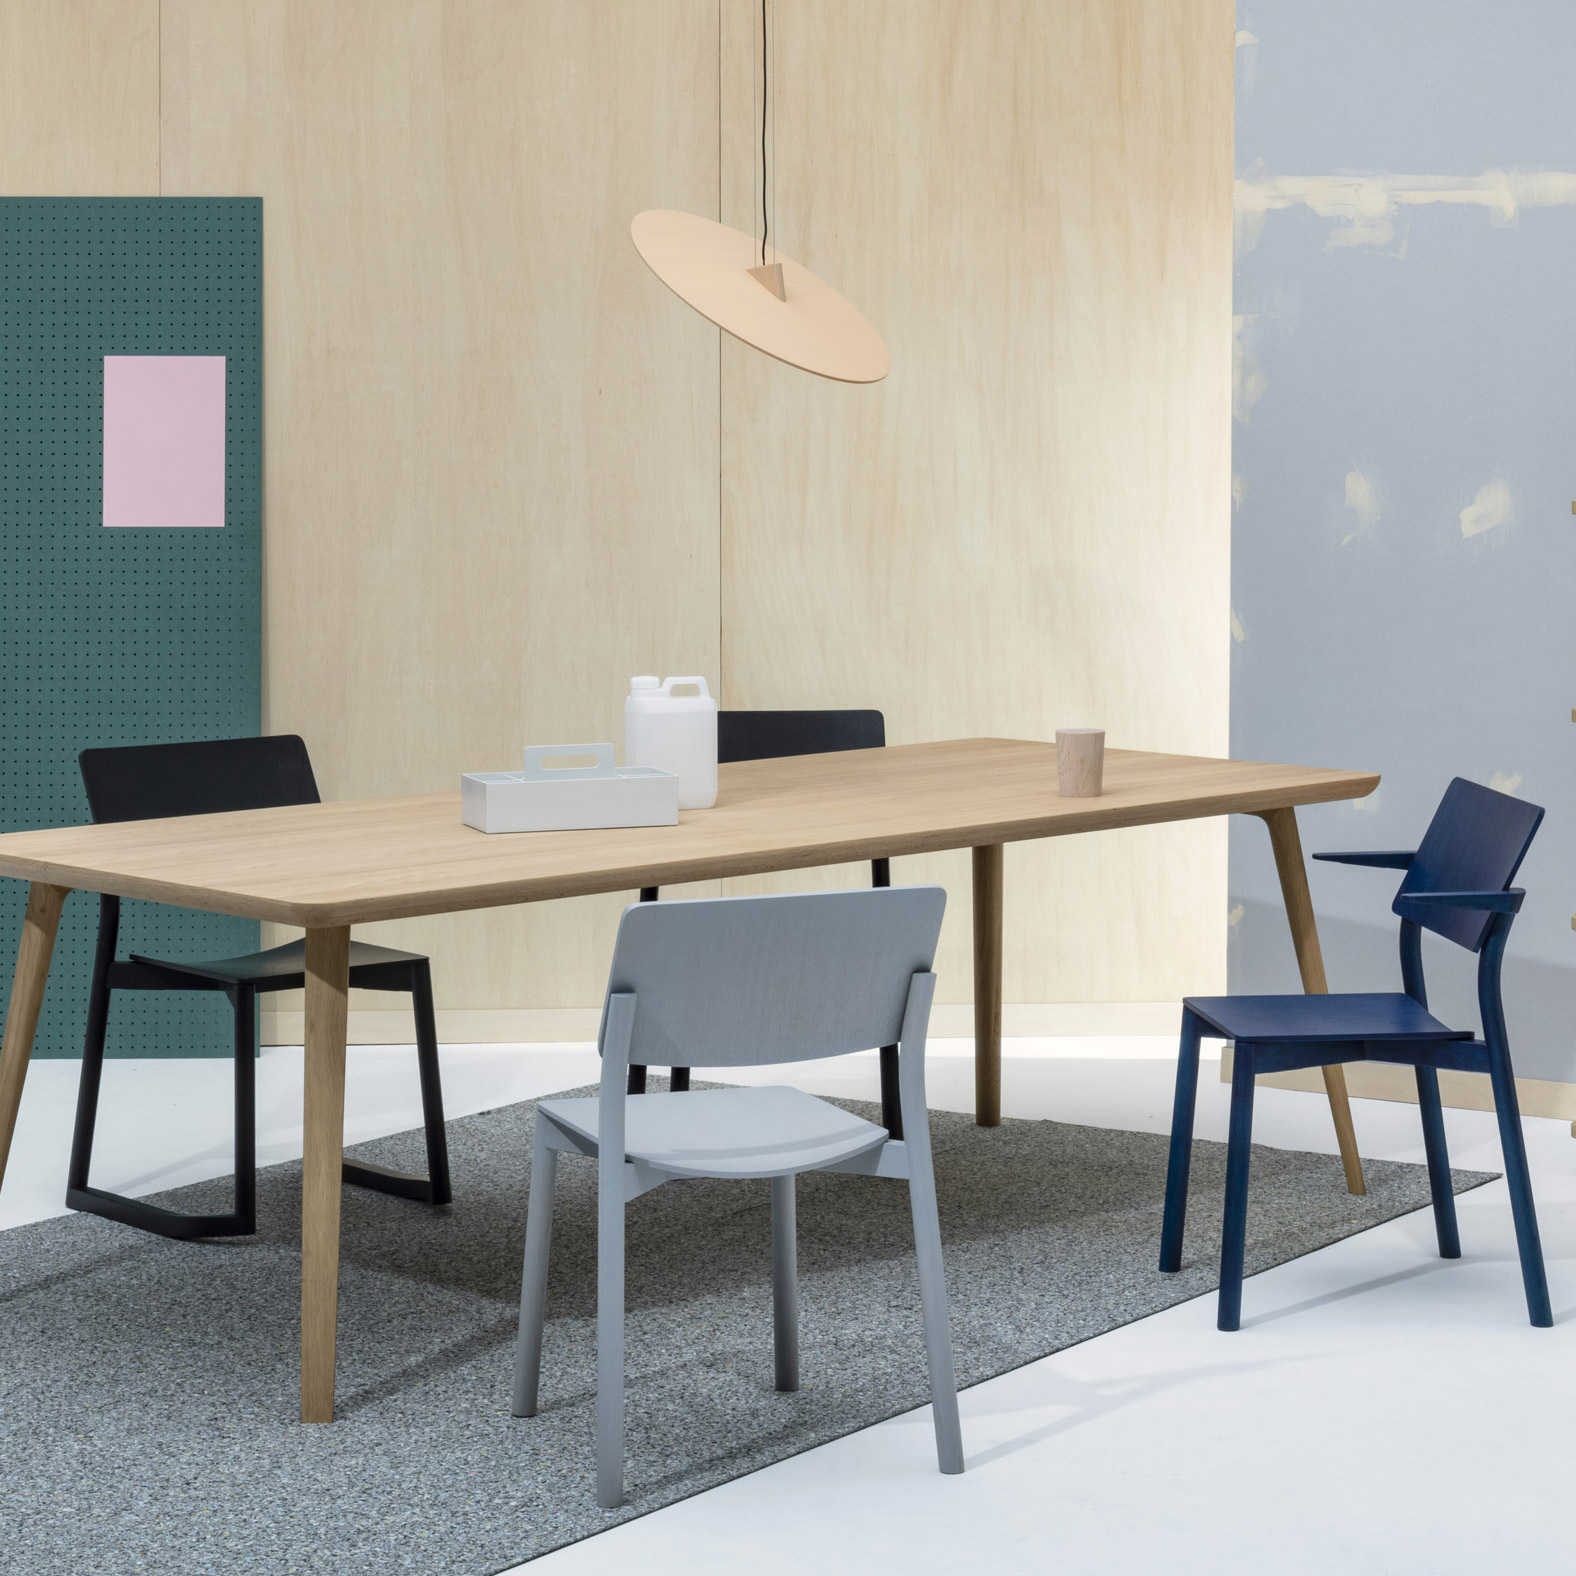 Panorama chair by Geckeler Michels for Karimoku around table